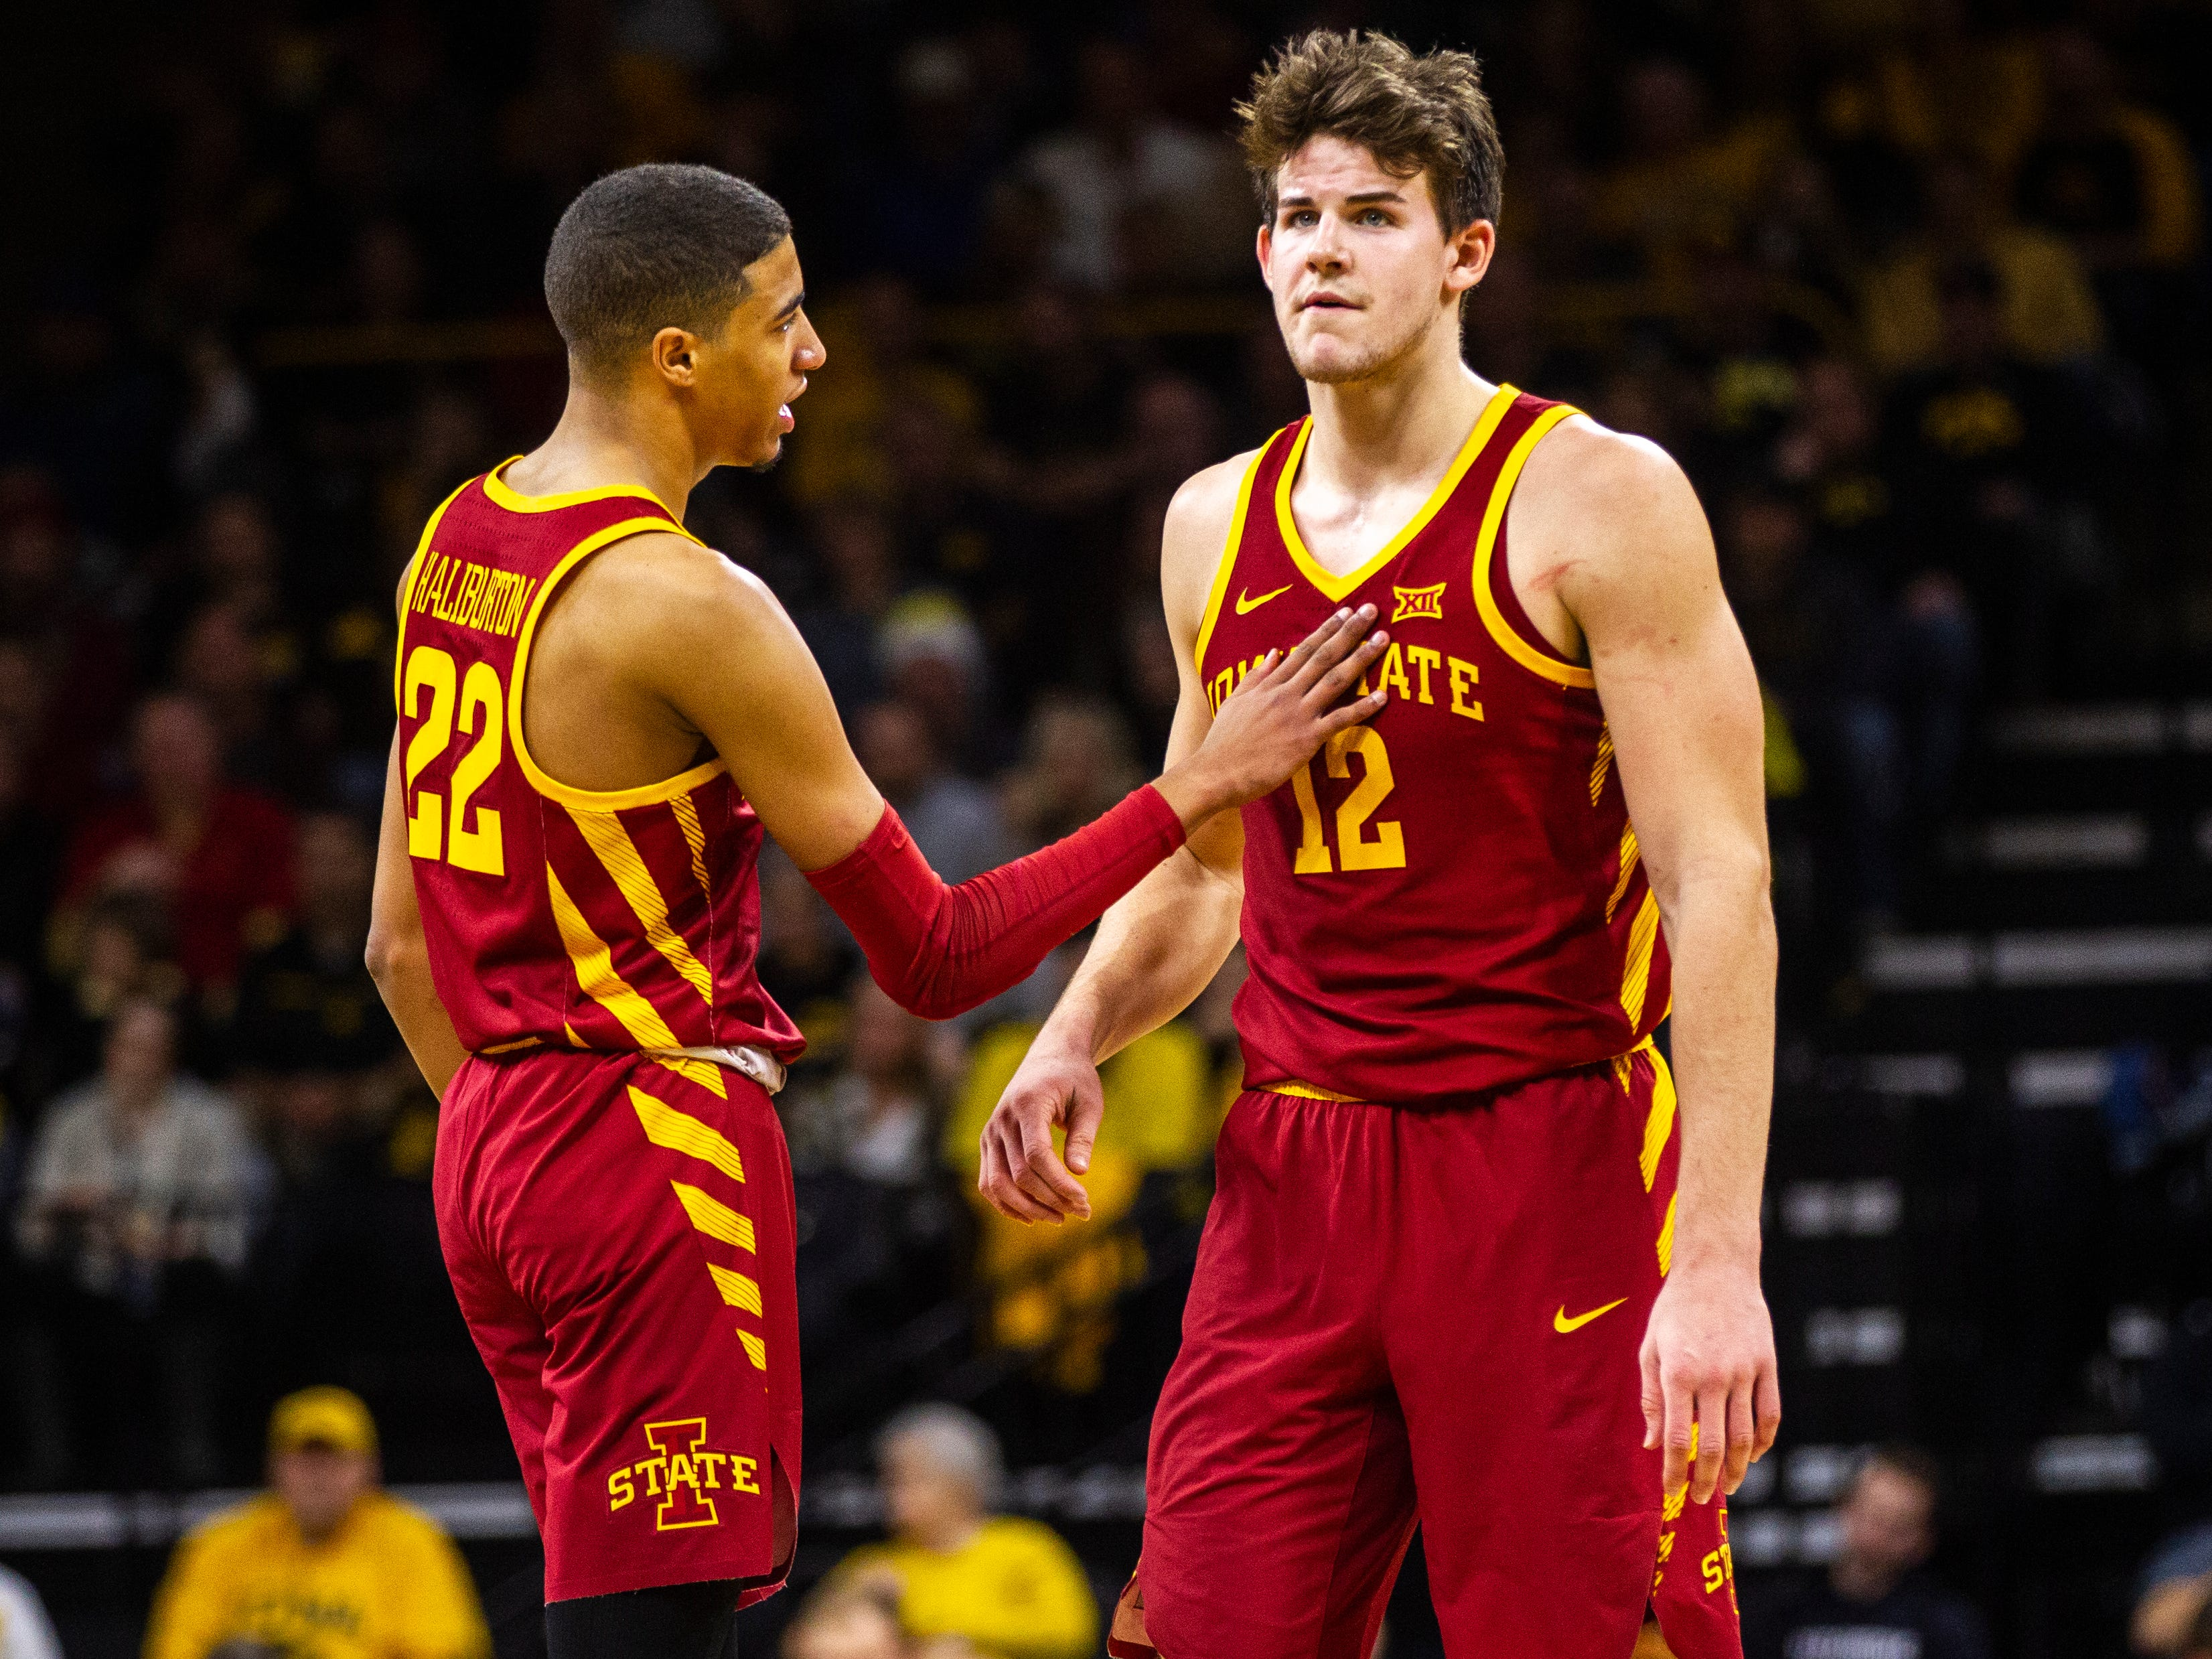 Iowa State guard Tyrese Haliburton (22) pats Iowa State forward Michael Jacobson (12) on the chest during a NCAA Cy-Hawk series men's basketball game on Thursday, Dec. 6, 2018, at Carver-Hawkeye Arena in Iowa City.